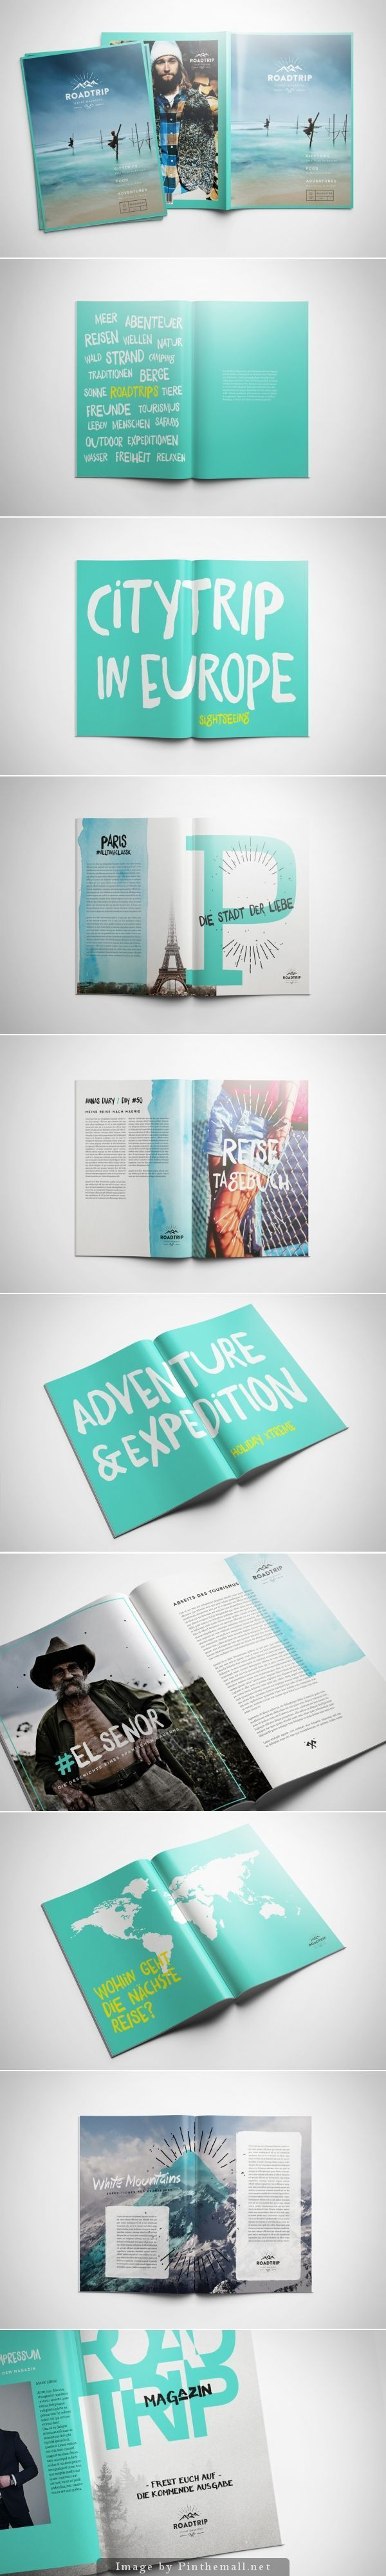 35 Great Editorial Designs For Your Inspiration | From up North